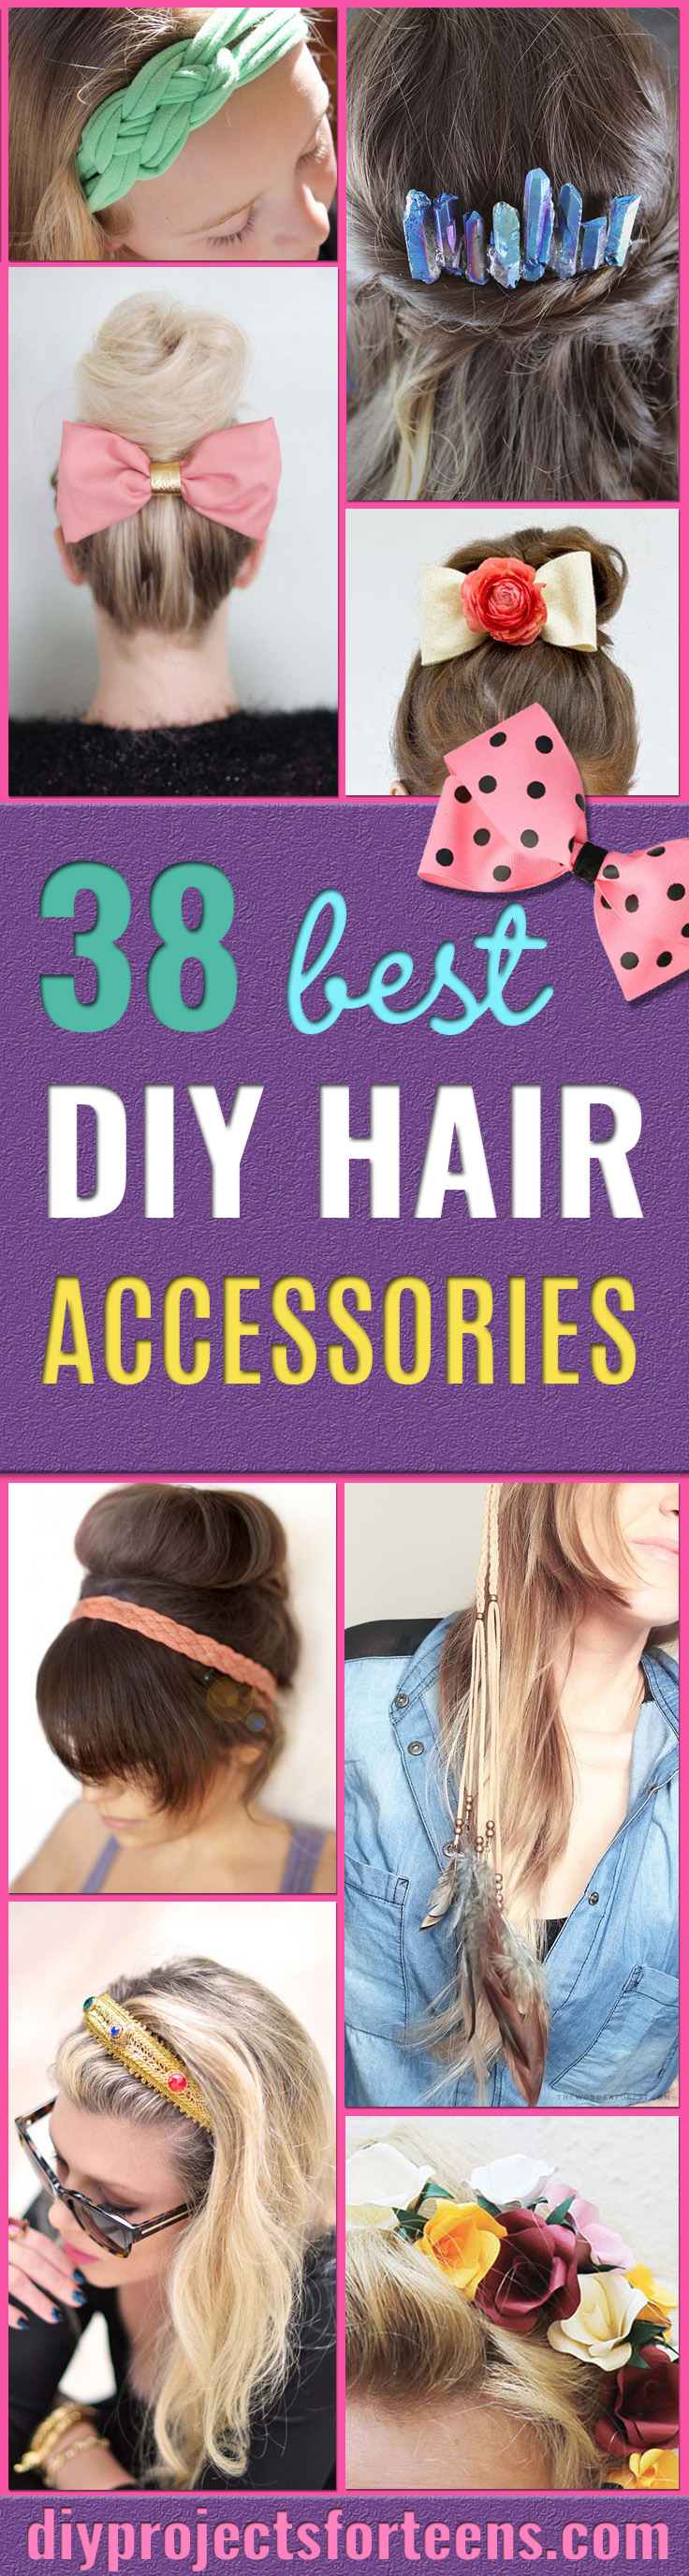 38 Creative DIY Hair Accessories - Create Pretty Hairstyles for Women, Teens and Girls with These Easy Tutorials - Vintage and Boho Looks for Prom and Wedding - Step by Step Instructions for Cool Headbands, Barettes, Pony Tail Holders, Hair Clips, Bobby Pins and Bows